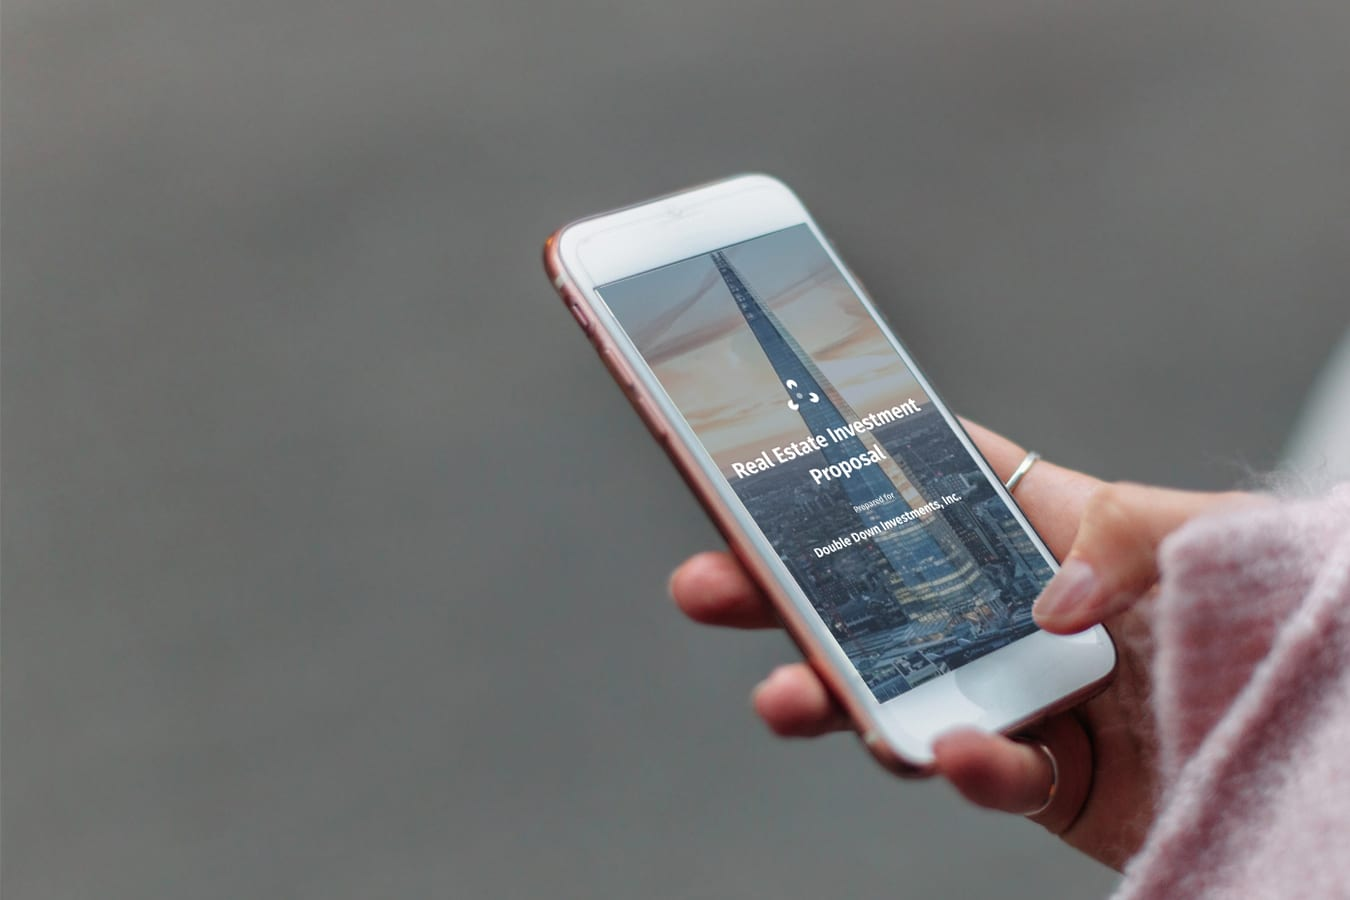 real-estate-investment-proposal-template-mobile